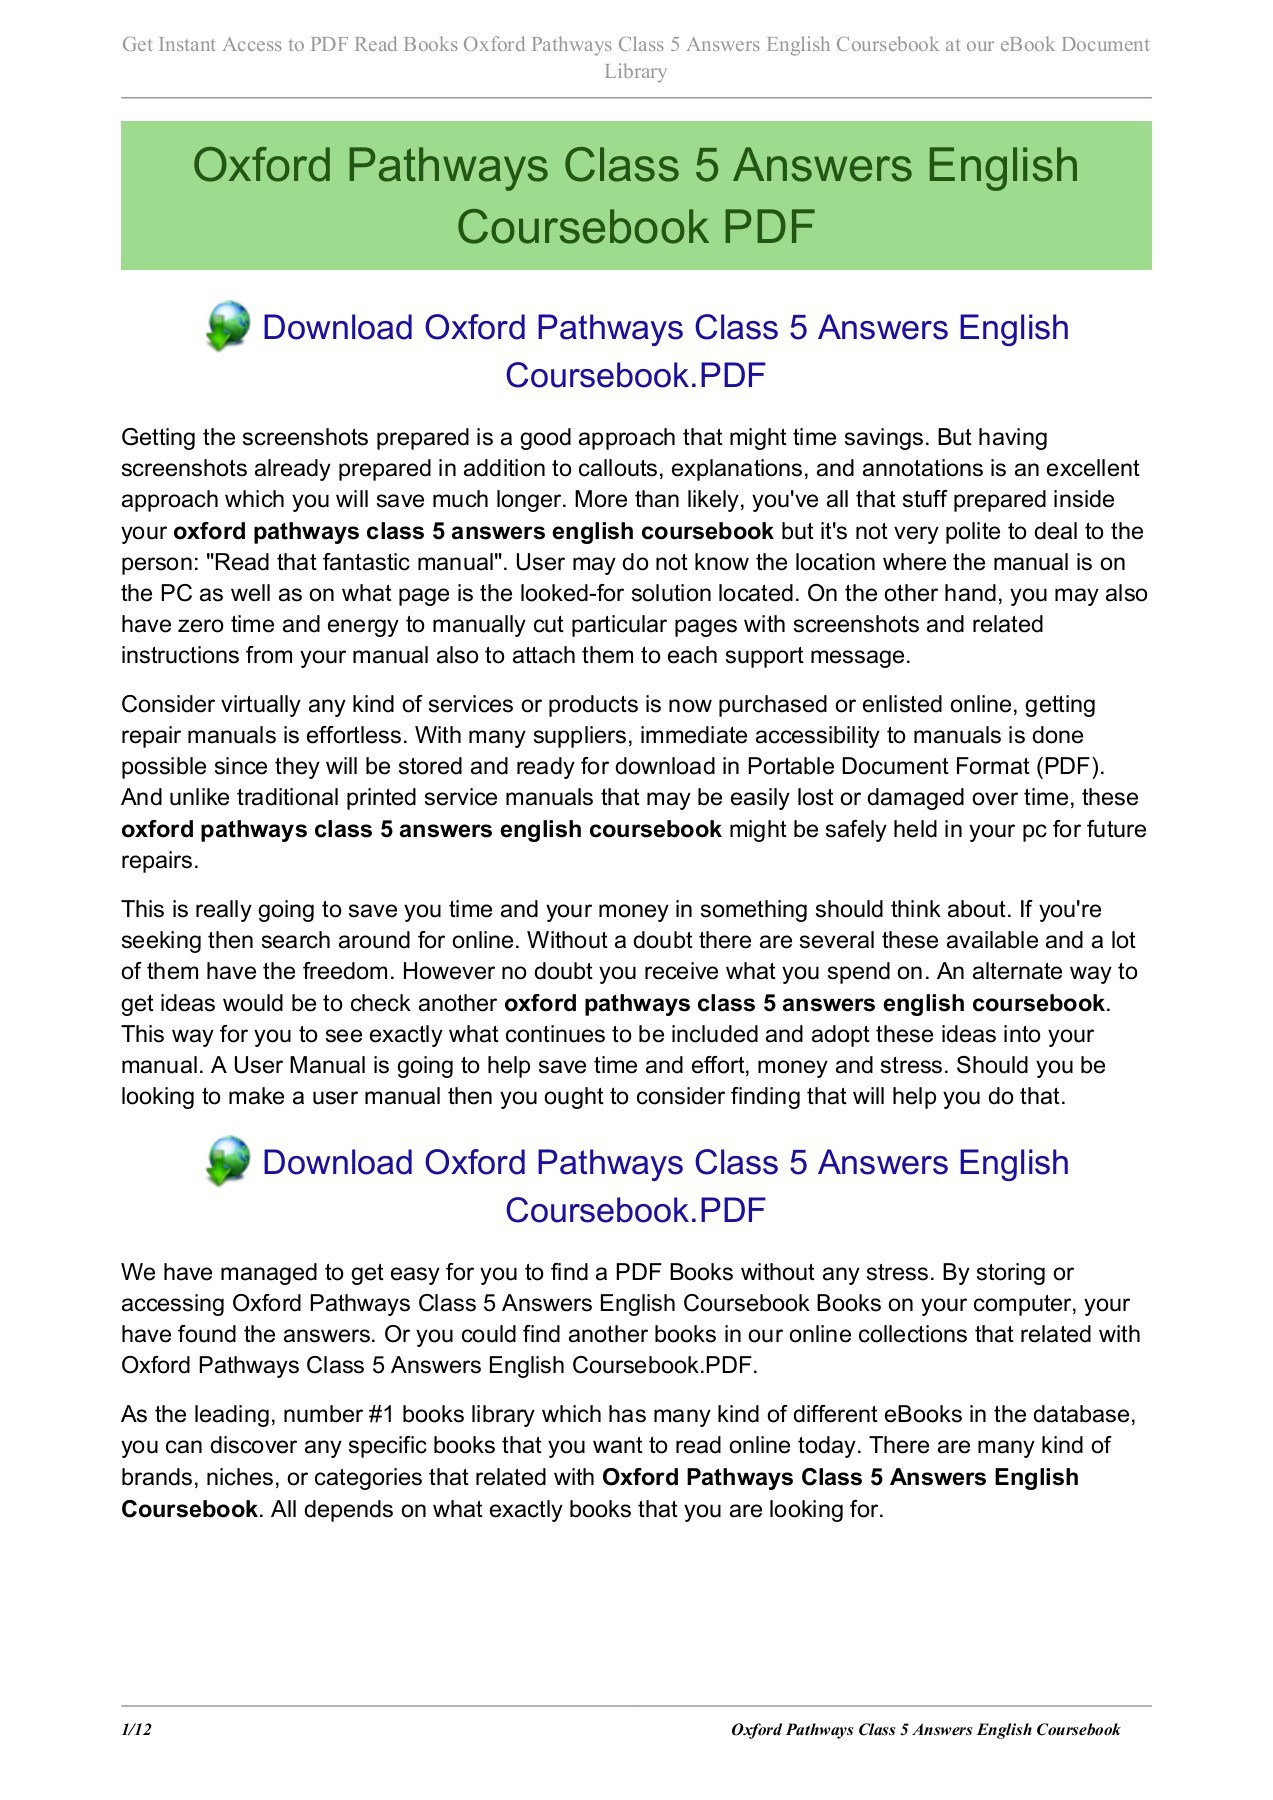 hight resolution of oxford pathways class 5 answers english coursebook pages 1 12 text version fliphtml5